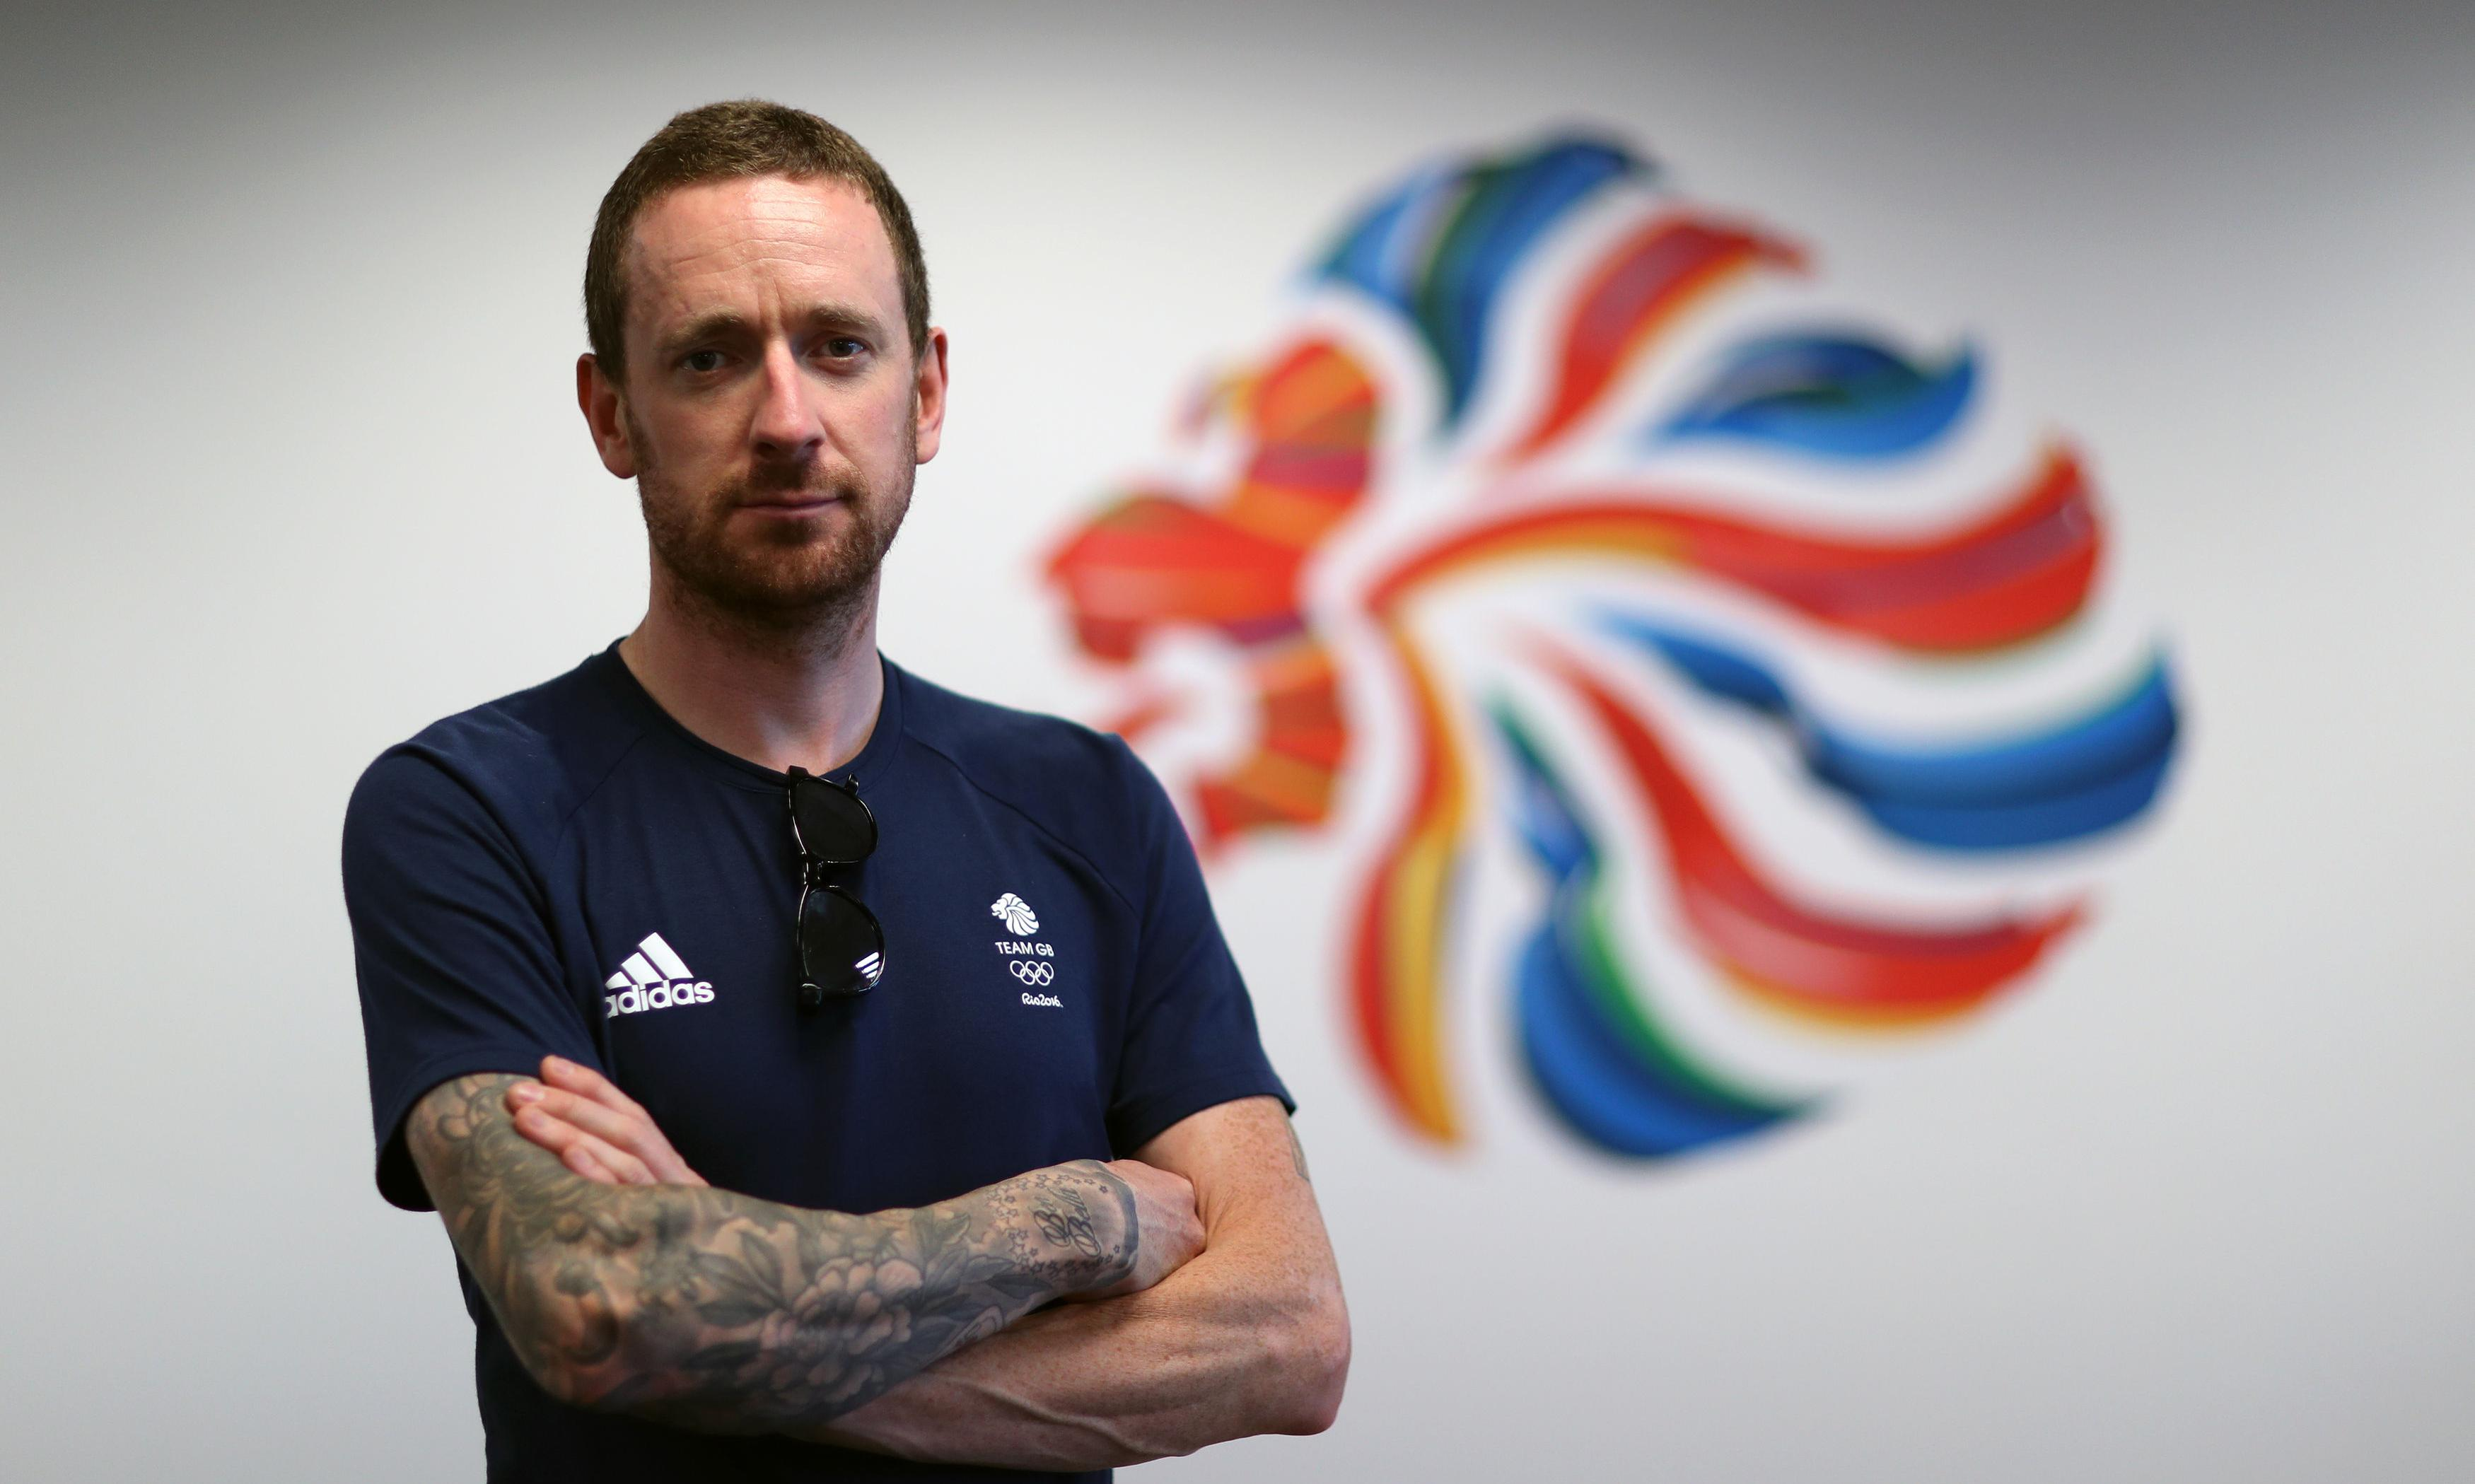 Bradley Wiggins 'failed whereabouts test' three months before Olympics